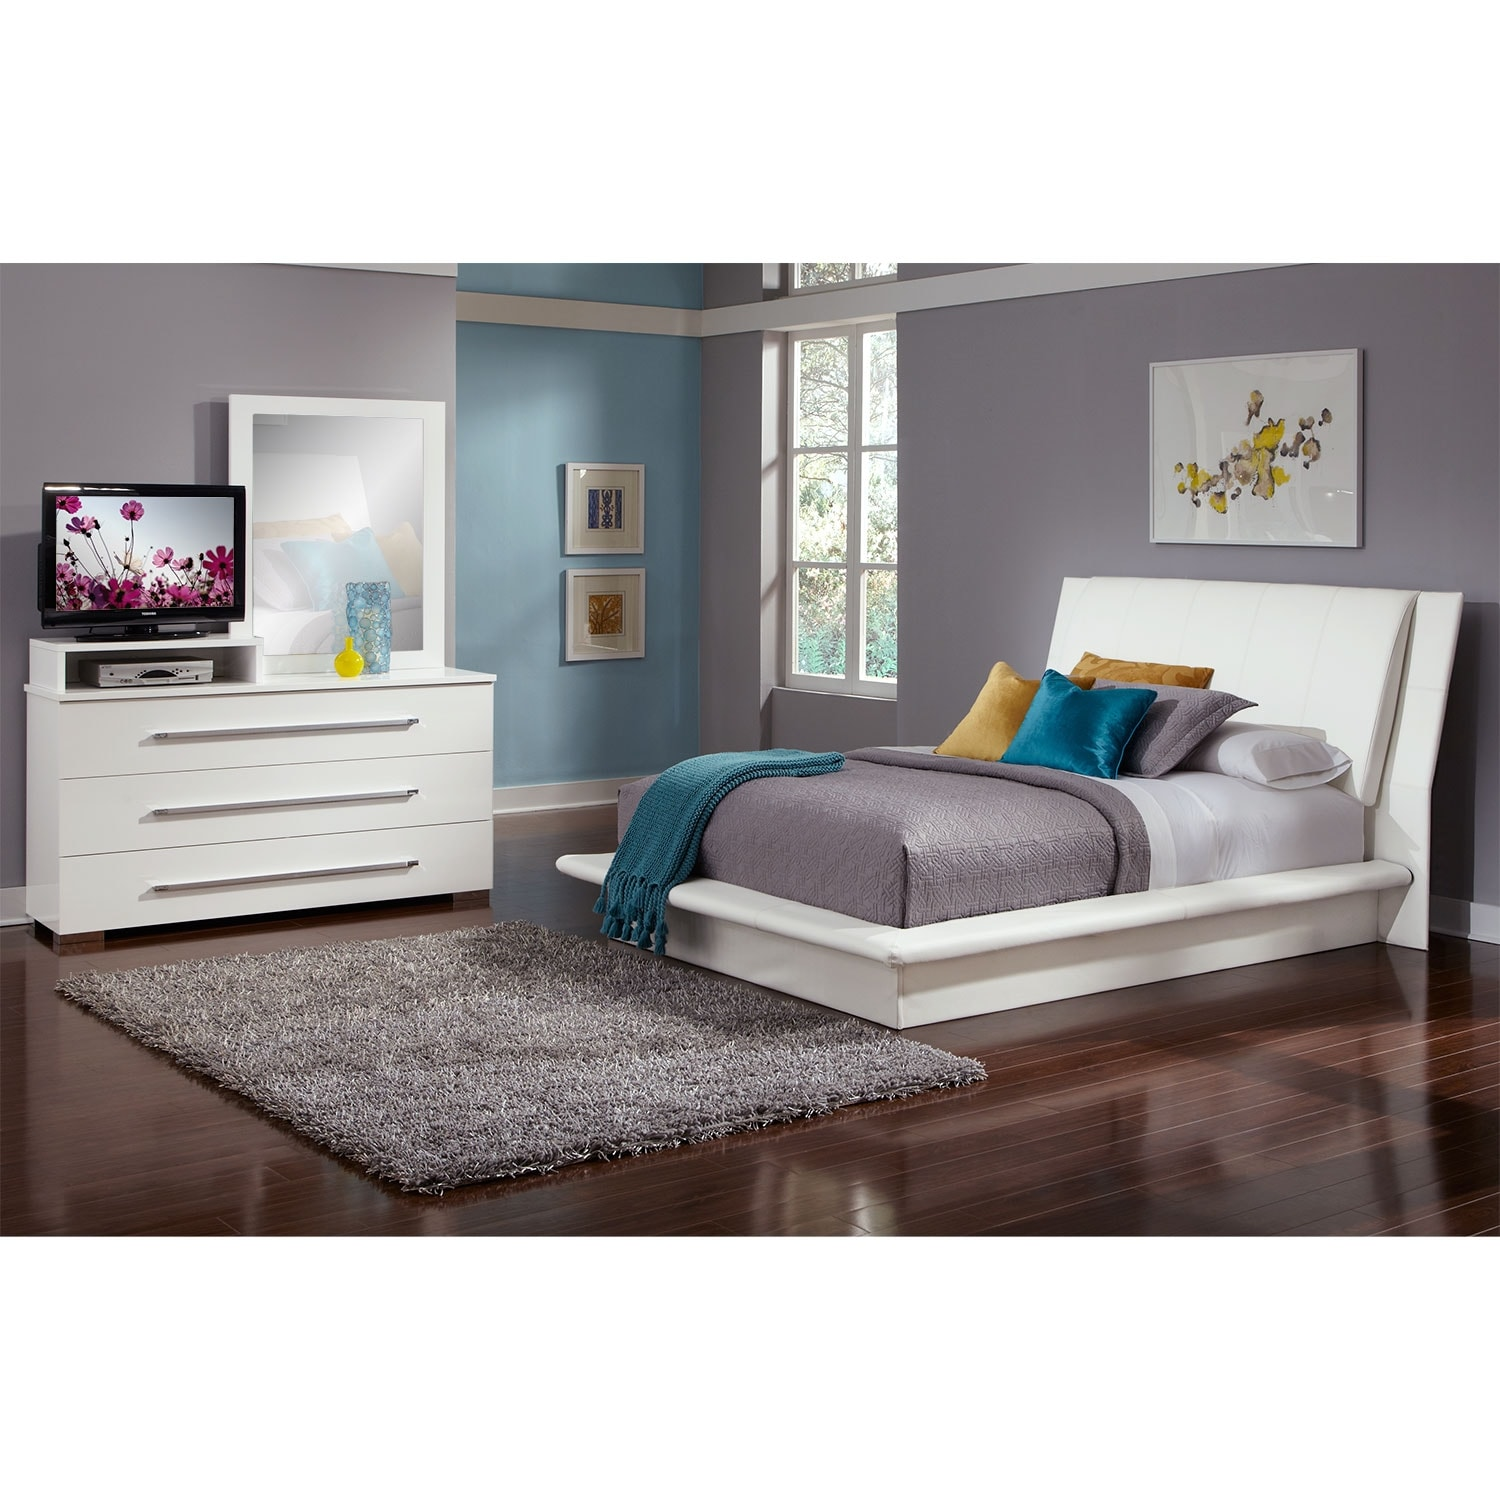 Value City Furniture Clearance Center